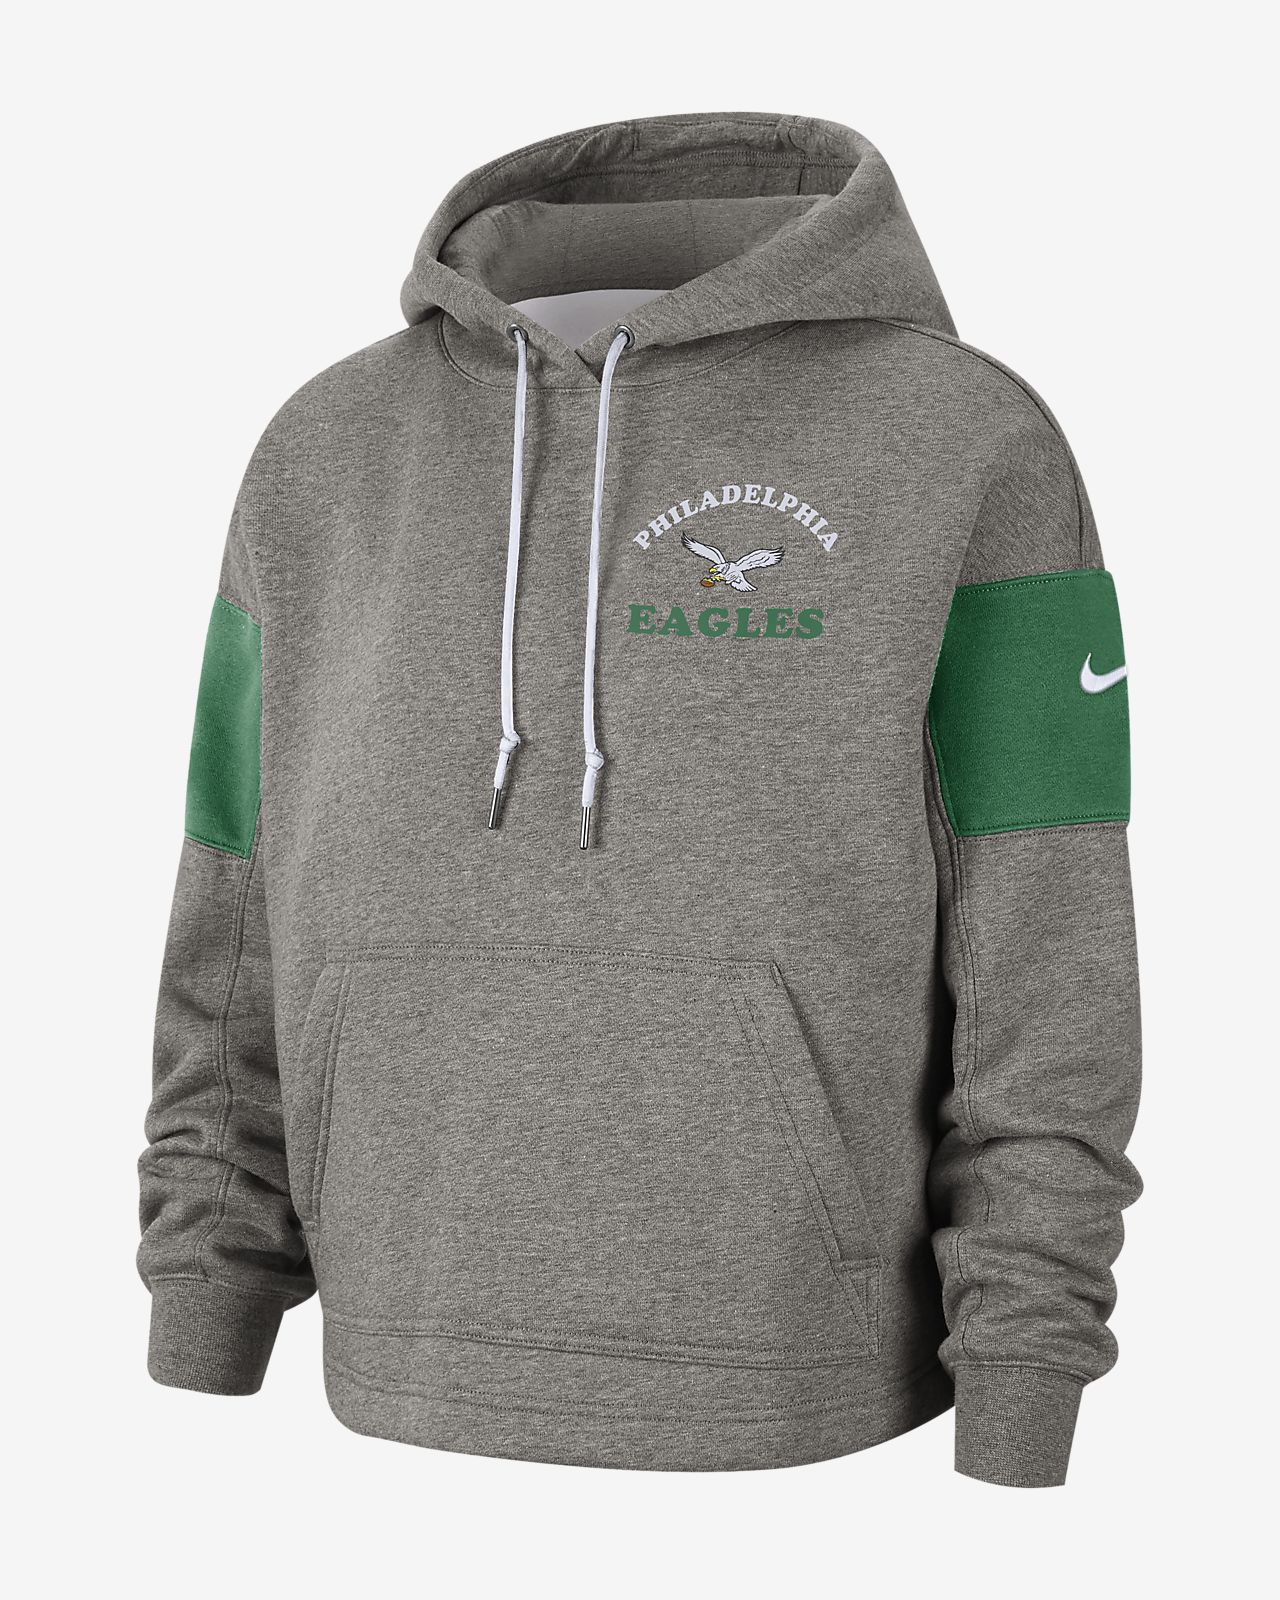 Nike Historic (NFL Eagles) Women's Pullover Hoodie